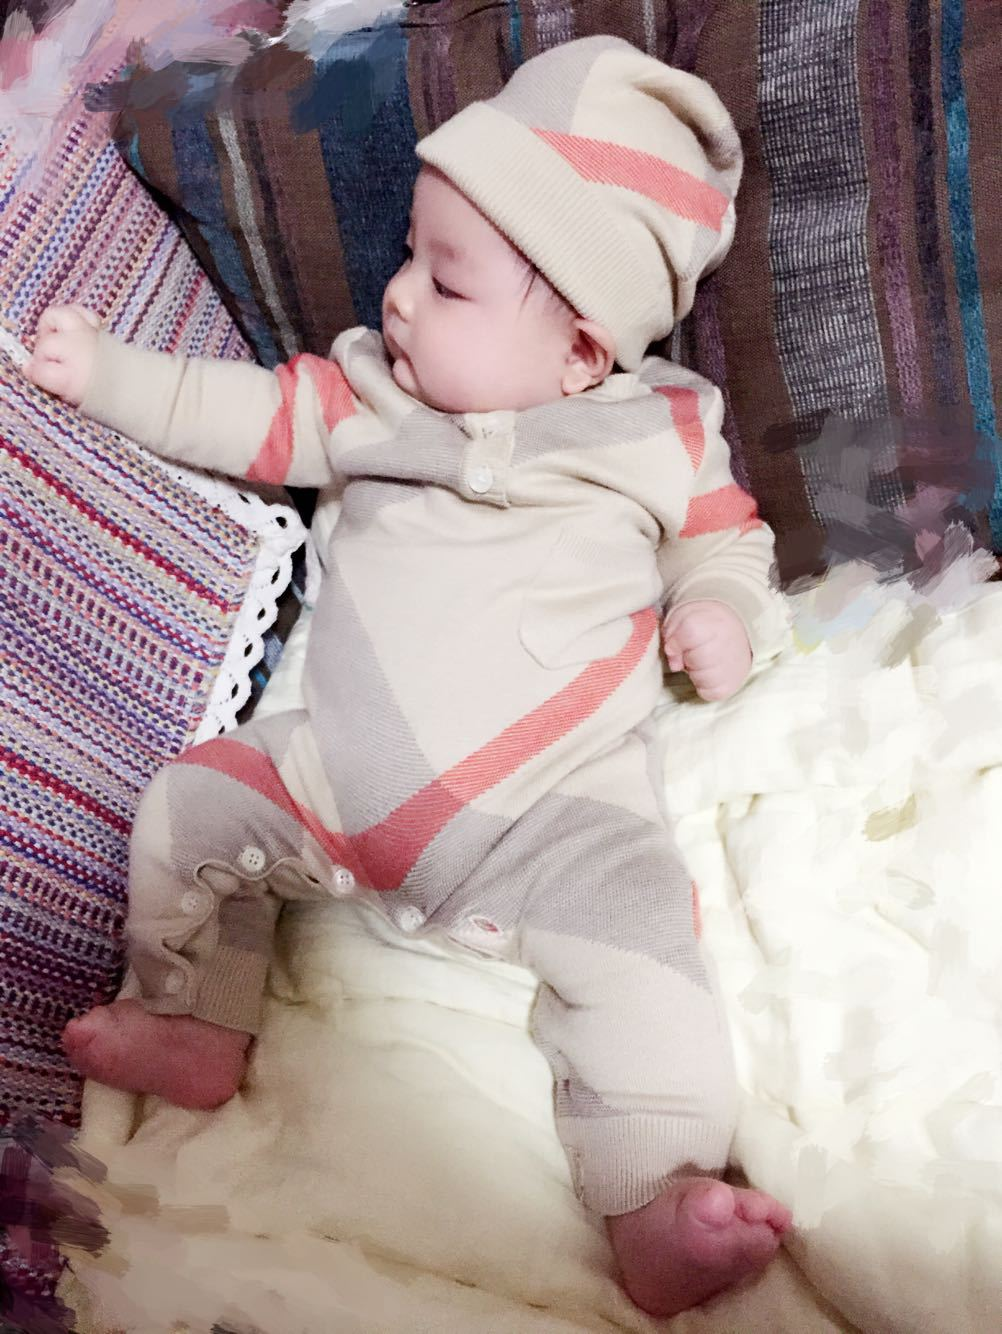 New Born Baby Clothes Long Sleeve Winter Fall Spring Set 0-3 Month Rompers Knitting Jumpsuits Plaid Knitted Cotton Clothes A HatNew Born Baby Clothes Long Sleeve Winter Fall Spring Set 0-3 Month Rompers Knitting Jumpsuits Plaid Knitted Cotton Clothes A Hat